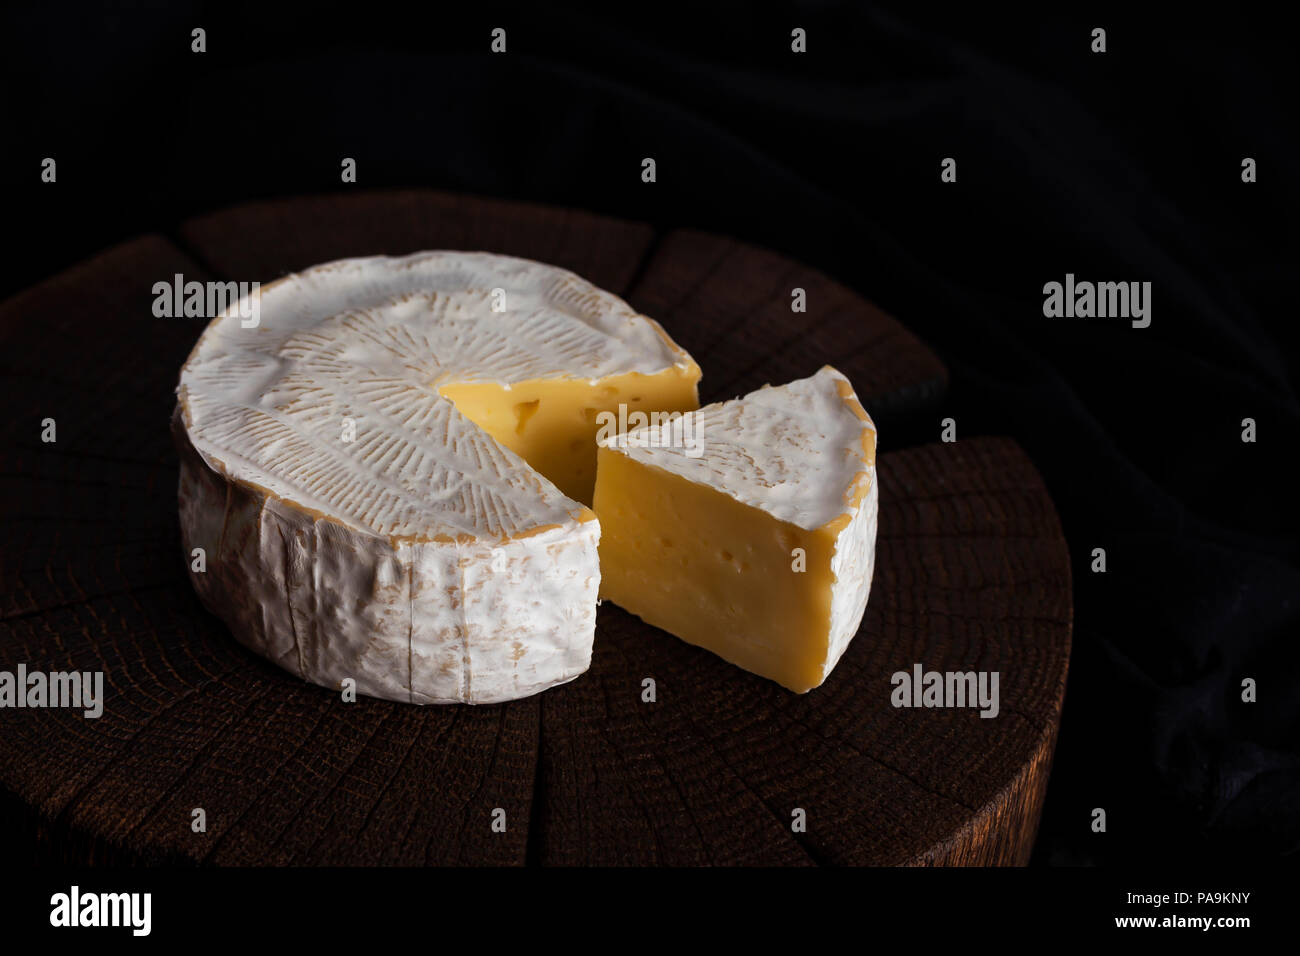 Camembert cheese on black wooden background, with copy space. Shallow depth of field - Stock Image